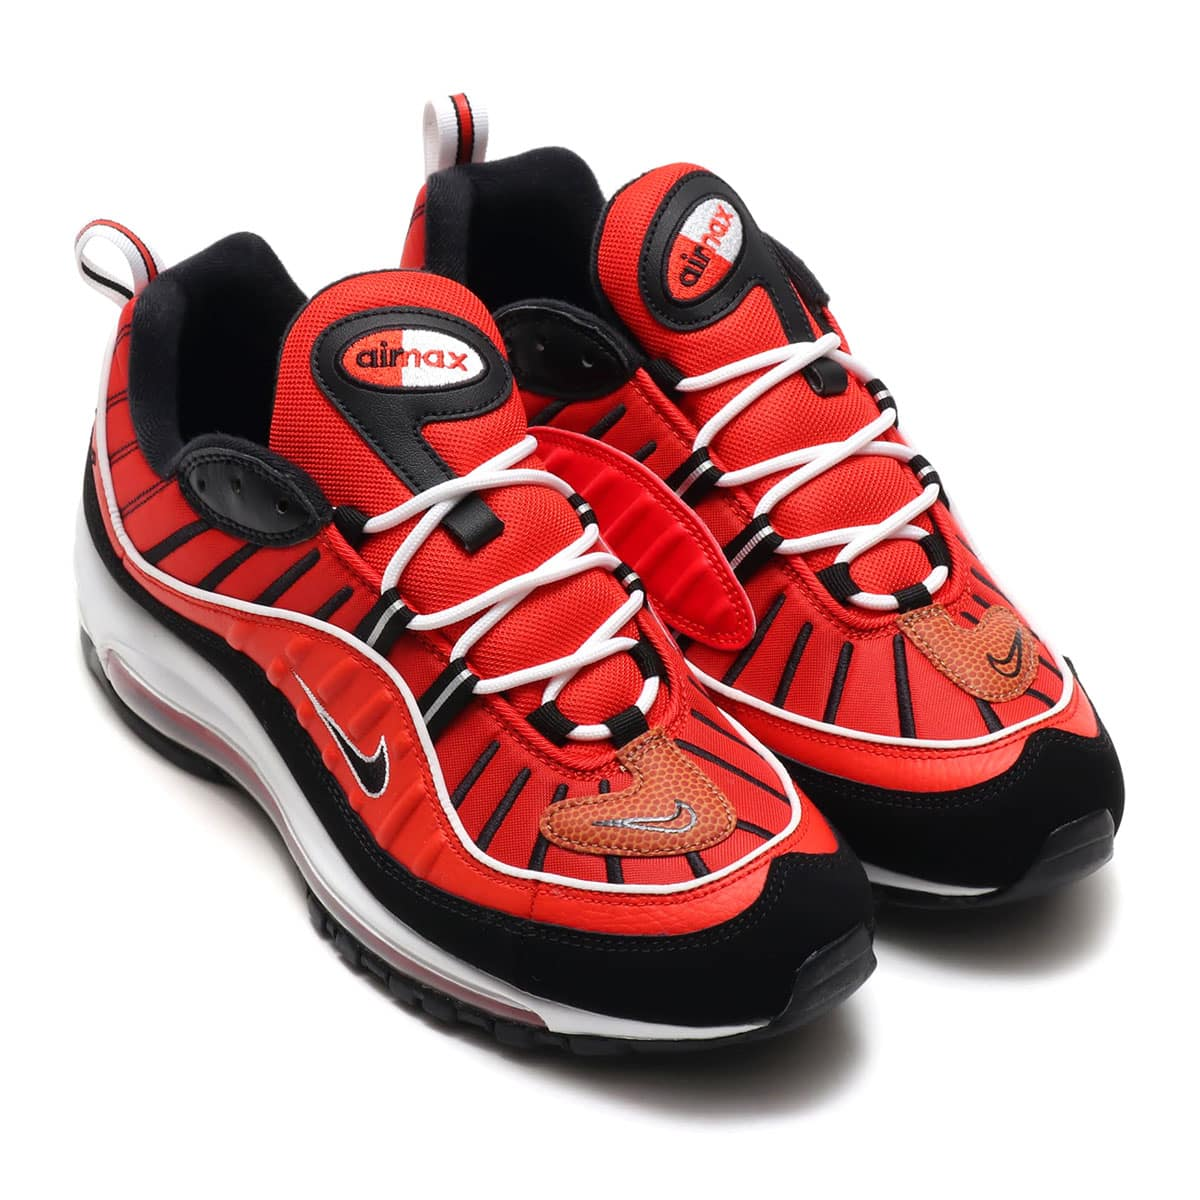 NIKE AIR MAX 98 HBNR RED/BLACK-WHITE-MTLC GLD 19SU-S_photo_large